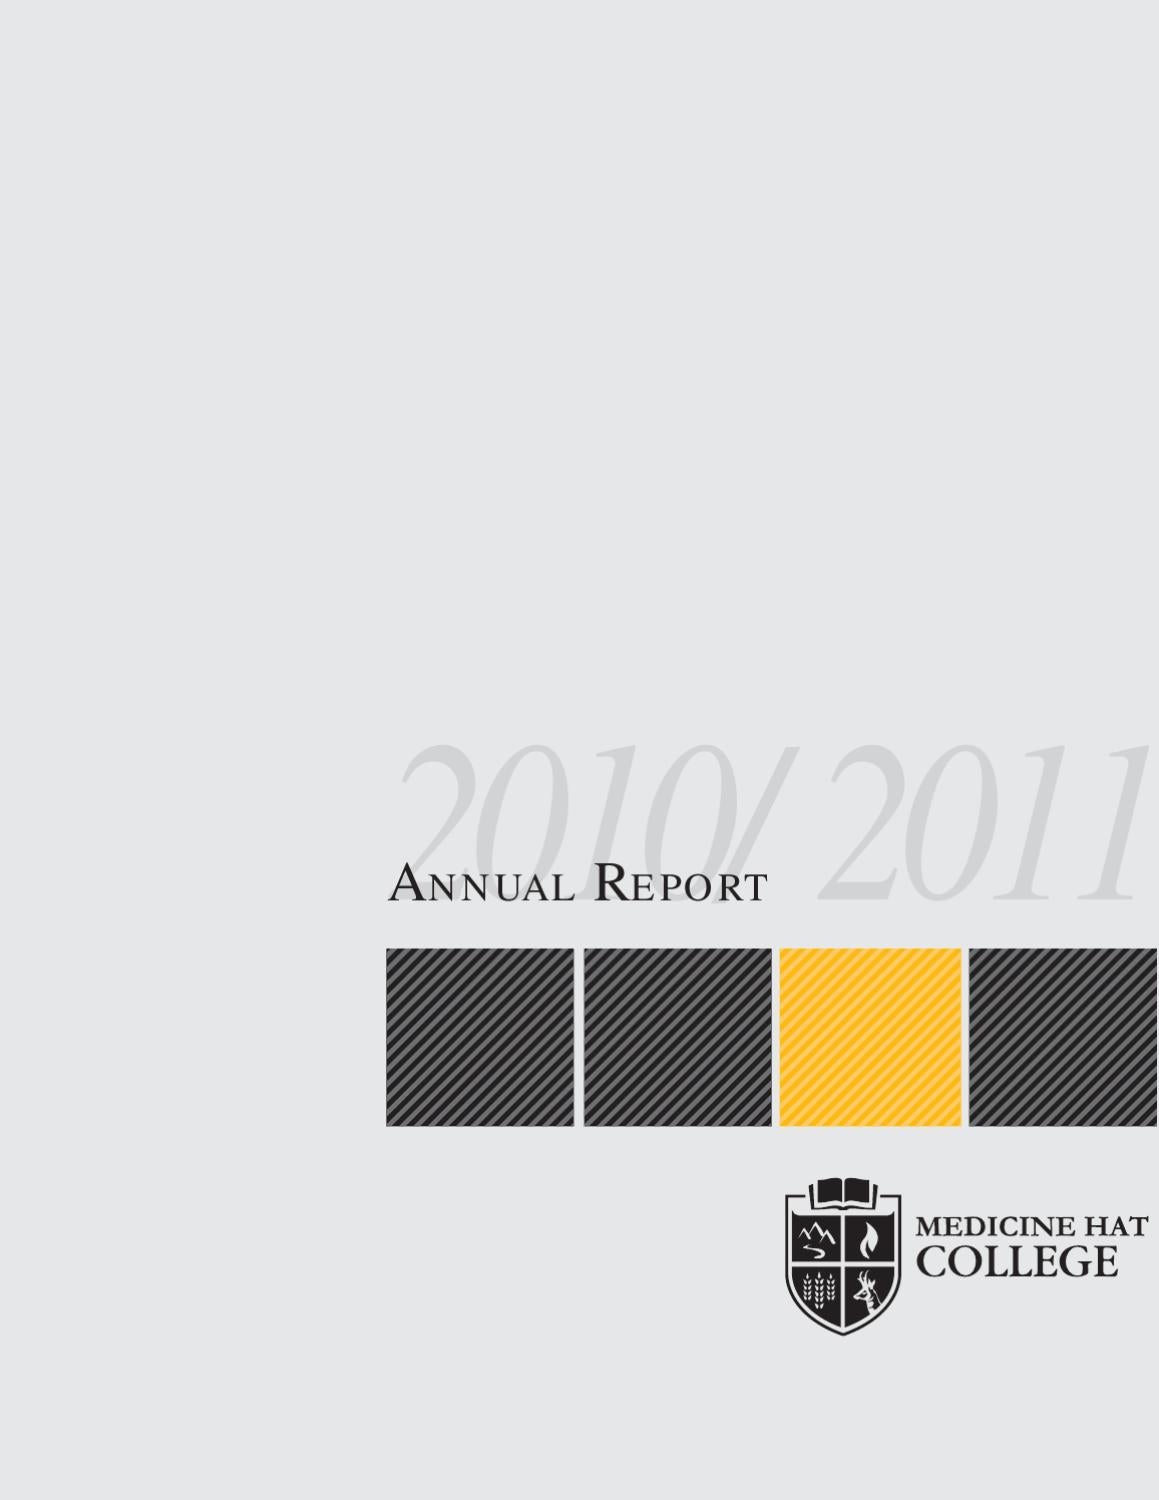 mhc annual report 201011 by medicine hat college issuu